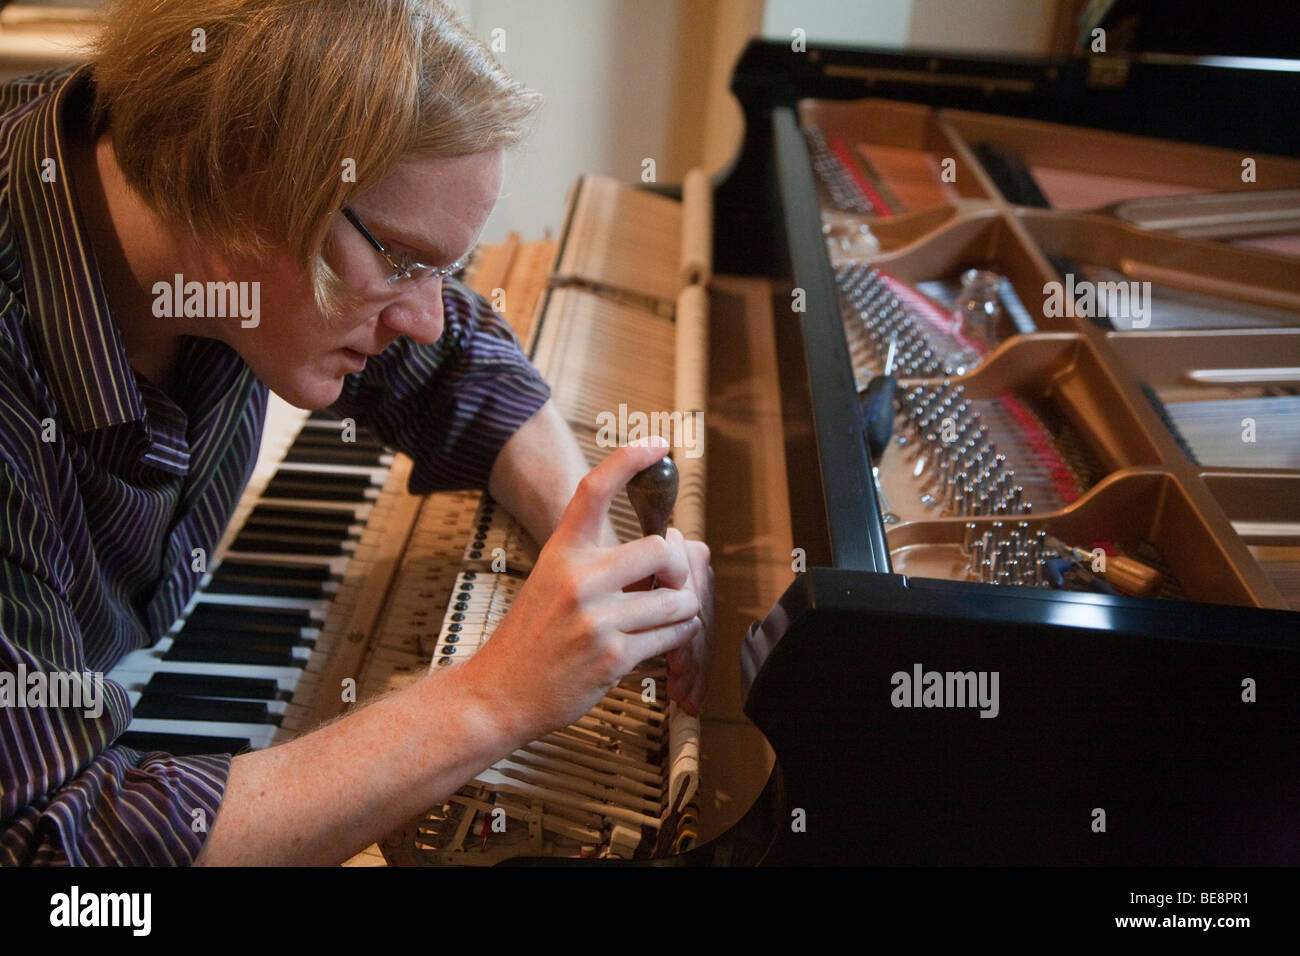 Piano tuner works on a grand piano - Stock Image